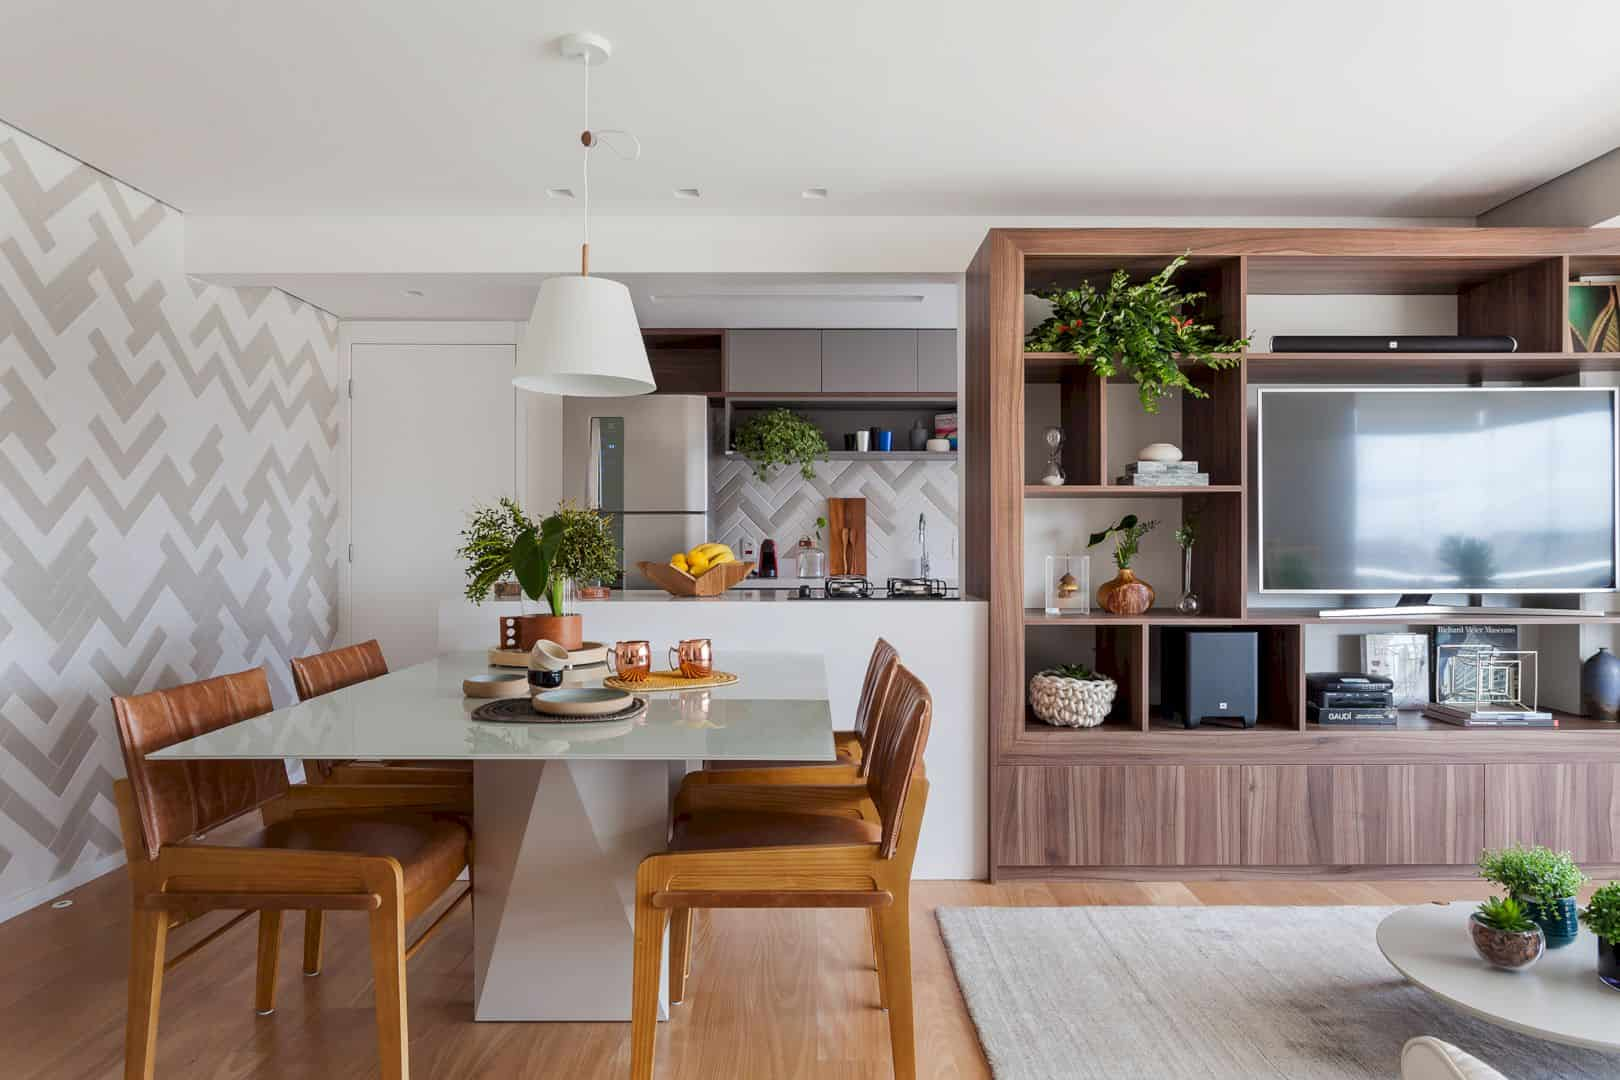 Apartment for Rent: Neutrality and Modernity of Apartment with Practical and Cozy Space